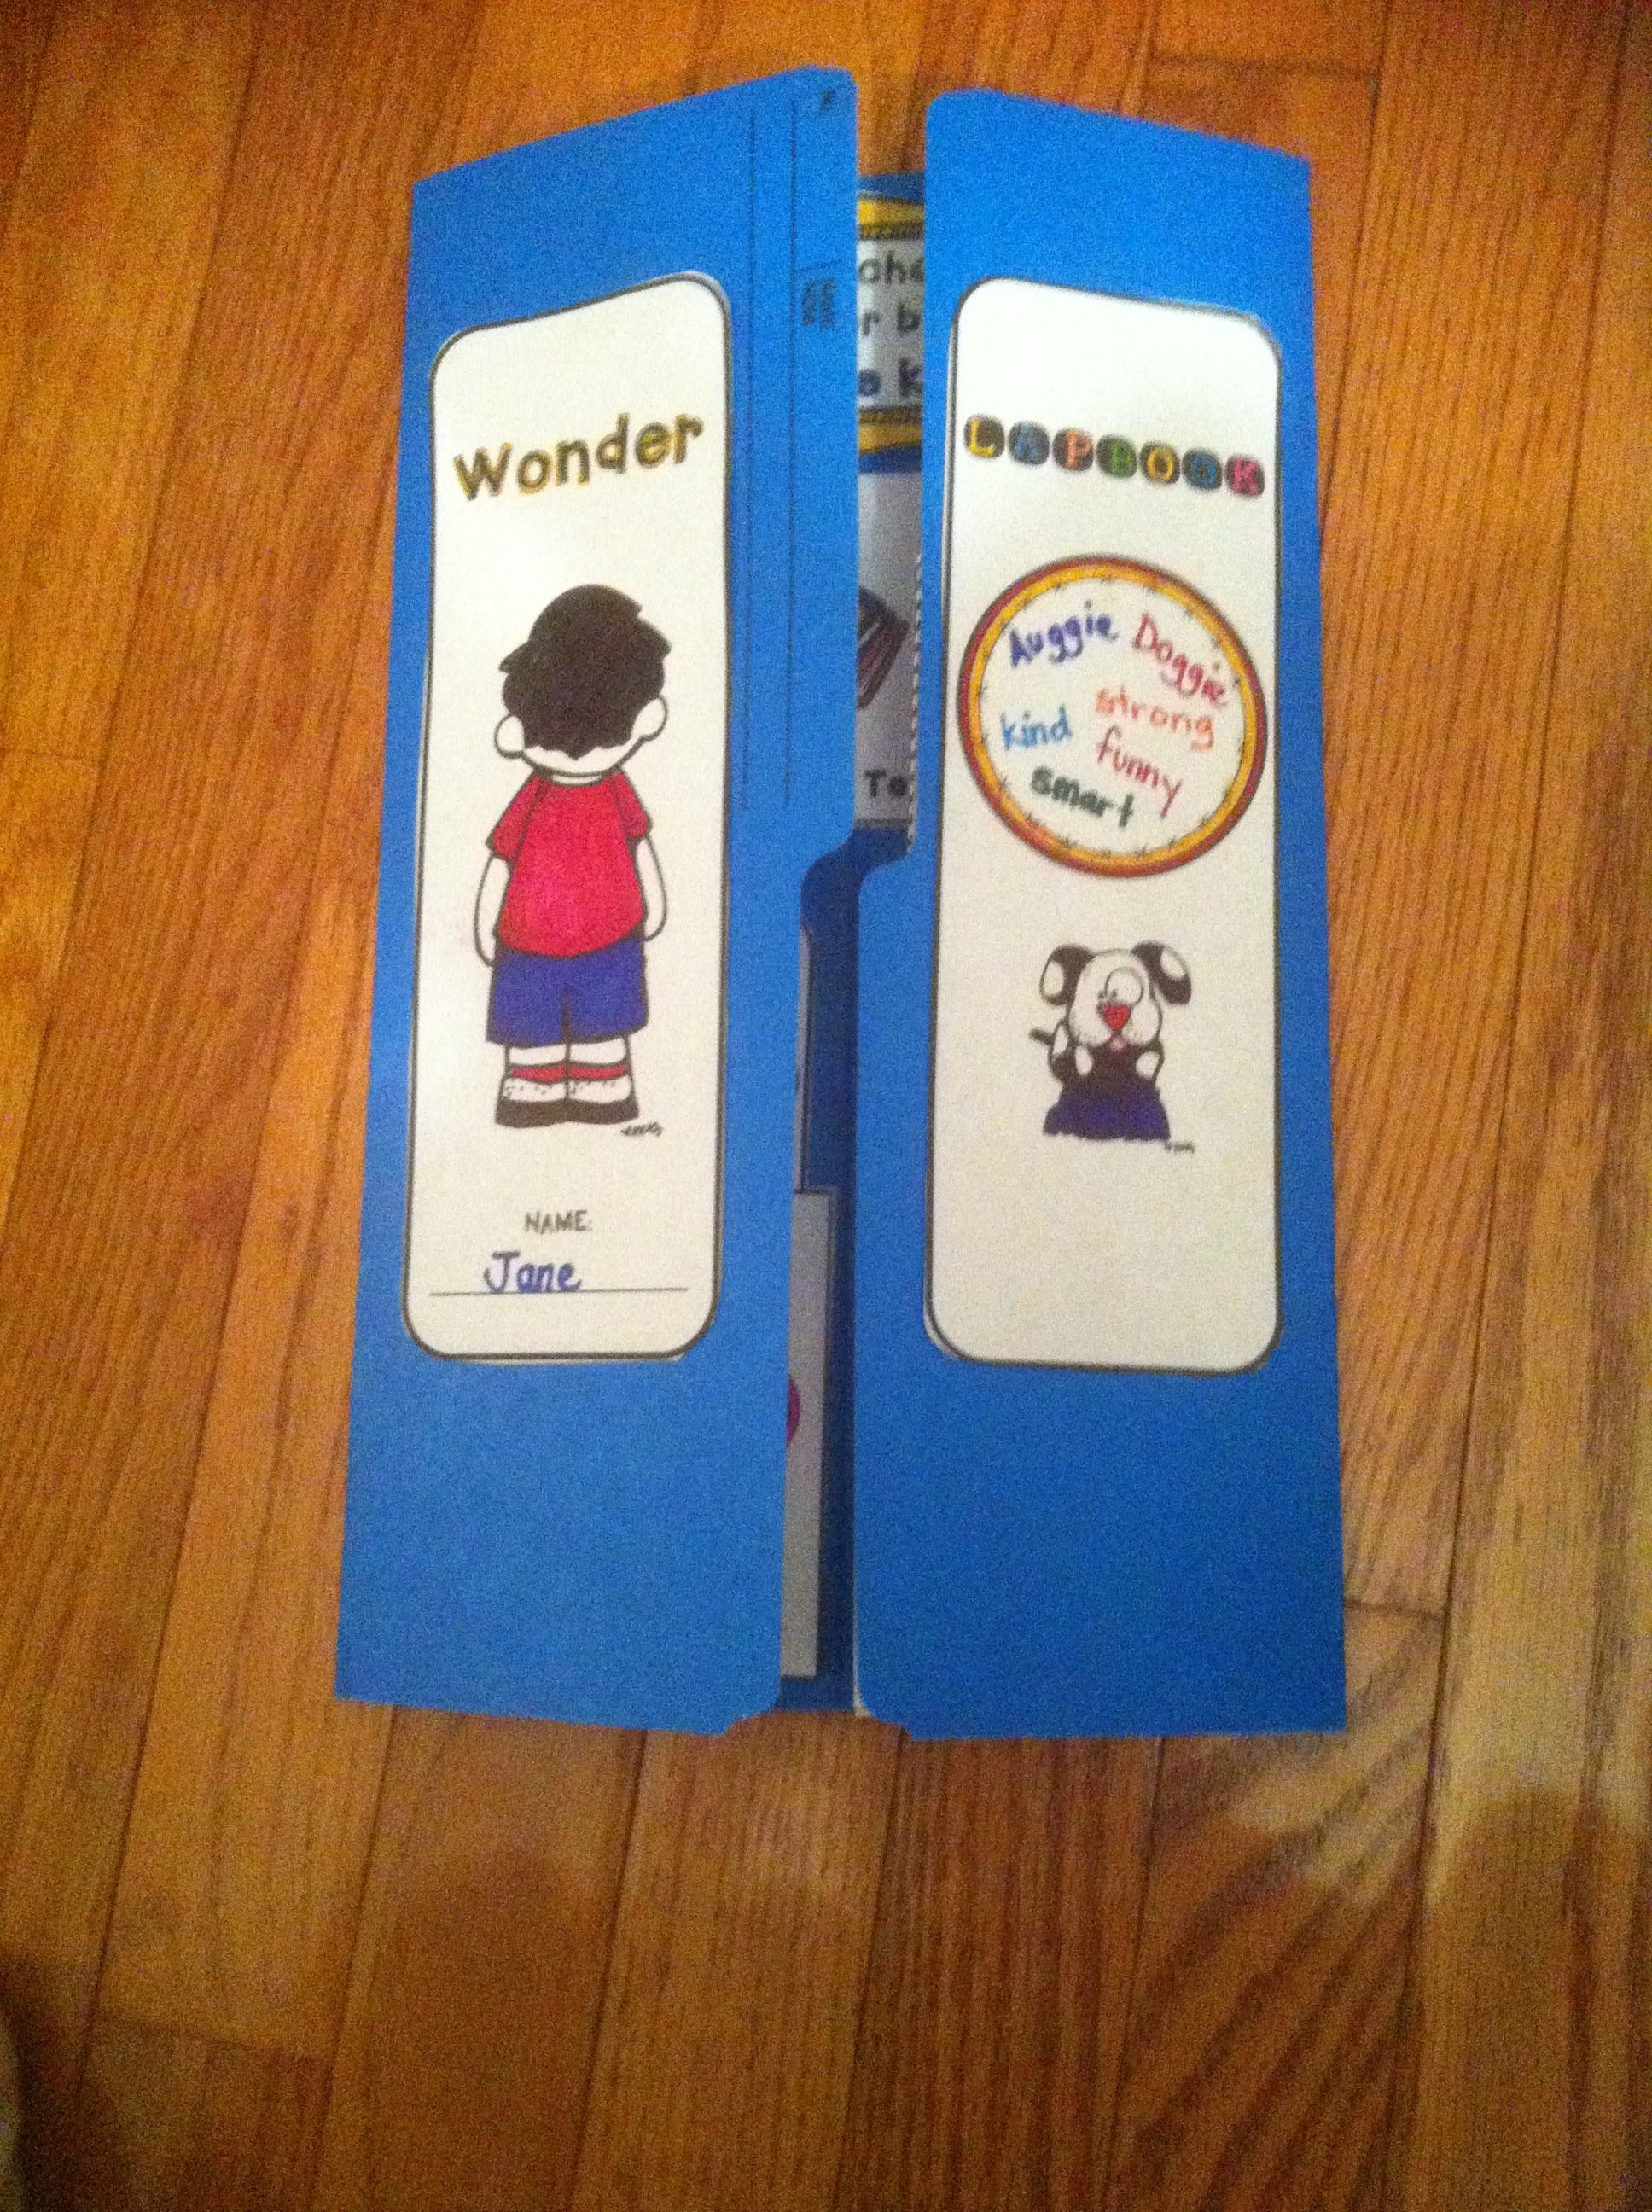 Wonder By R J Palacio Lapbook Teaching Wonder Wonder